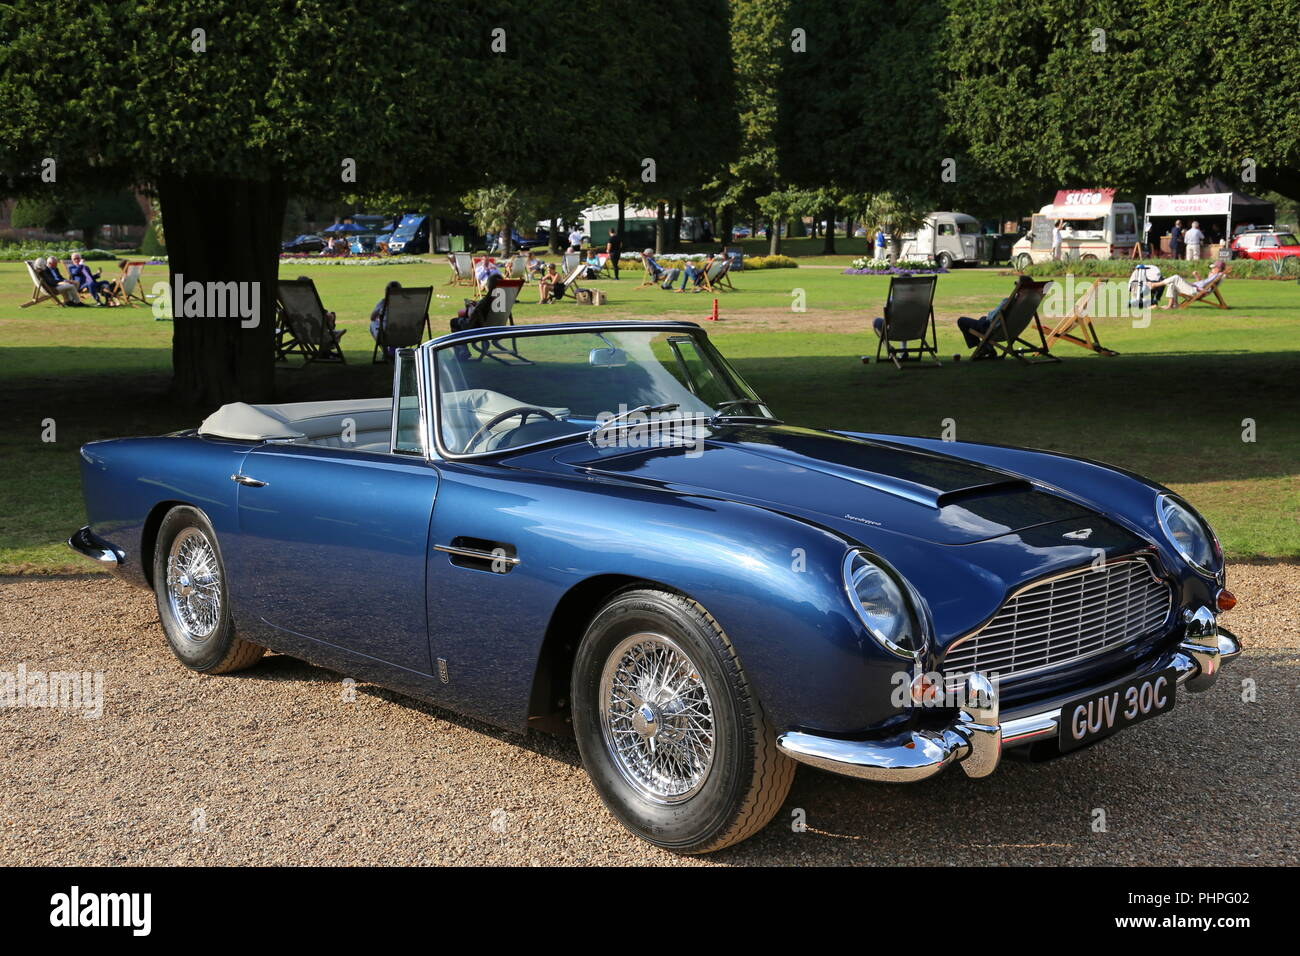 Aston Martin Db5 Convertible 1965 Concours Of Elegance 2018